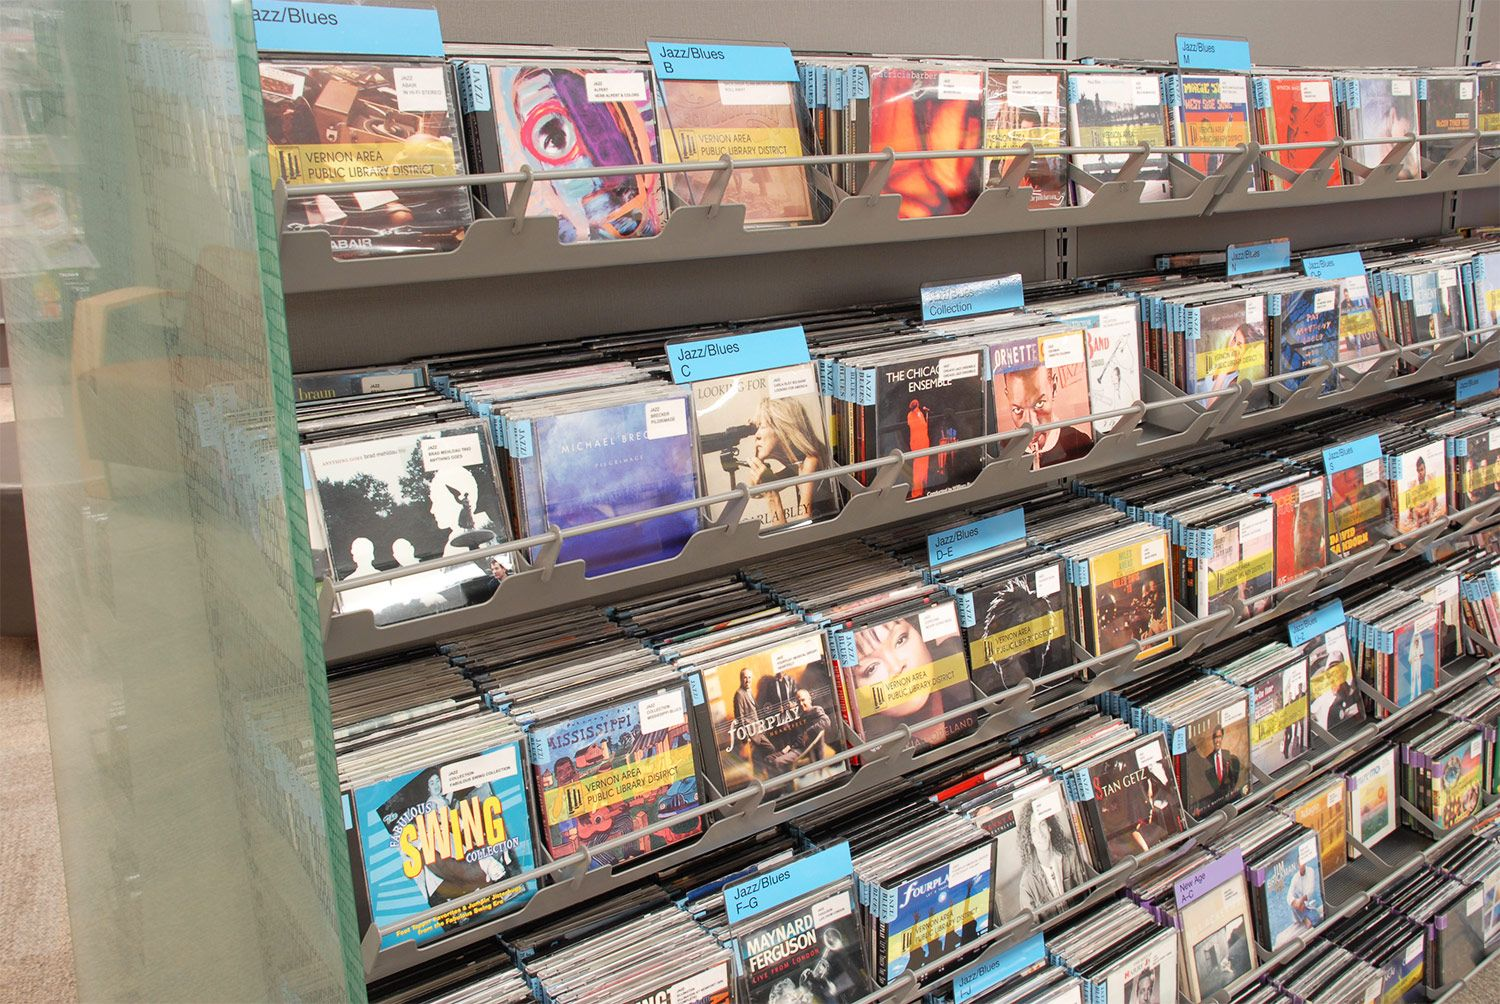 LFI install of CD/DVD Shelving - Divider Browsing Bins - Wauconda Area Public Library